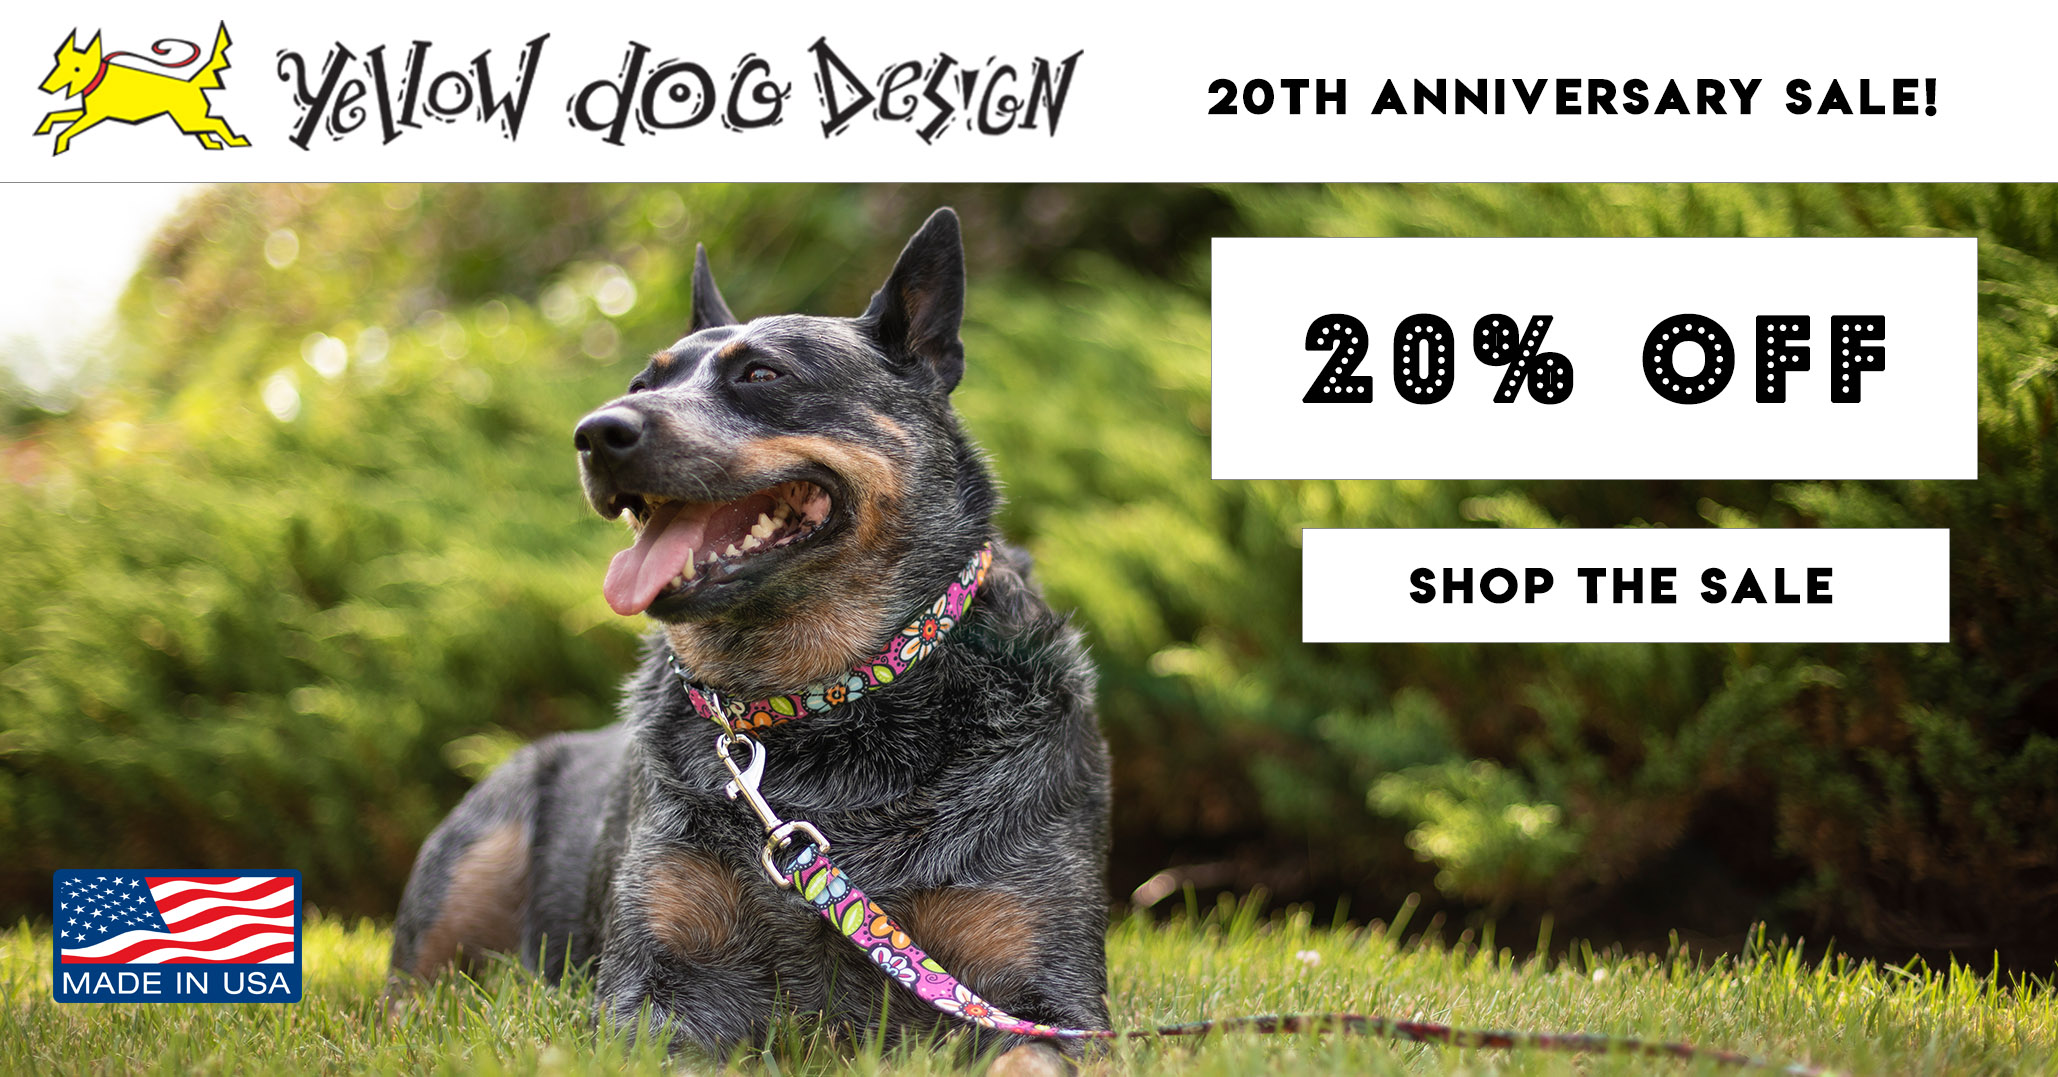 3c7a7add0f7b Personalized Dog Collars, Harnesses, ID Tags & Pet Essentials - Free  Shipping $30+